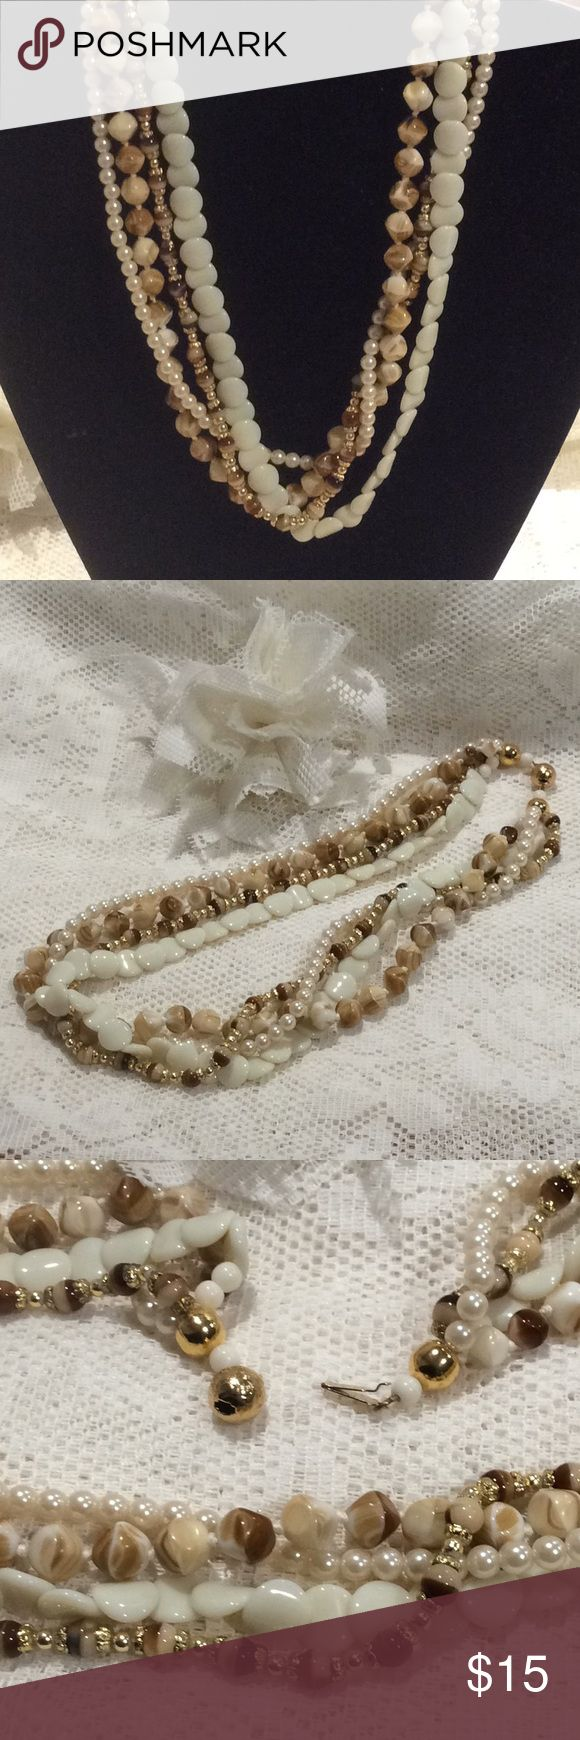 """Fabulous 4 strand necklace! Gorgeous preowned gently used 4 different strand necklace.    Closure works and is signed metal.  Cream, tan, brown and gold tone.   Approx. 8"""" length.  All strands are the same size. Jewelry Necklaces"""